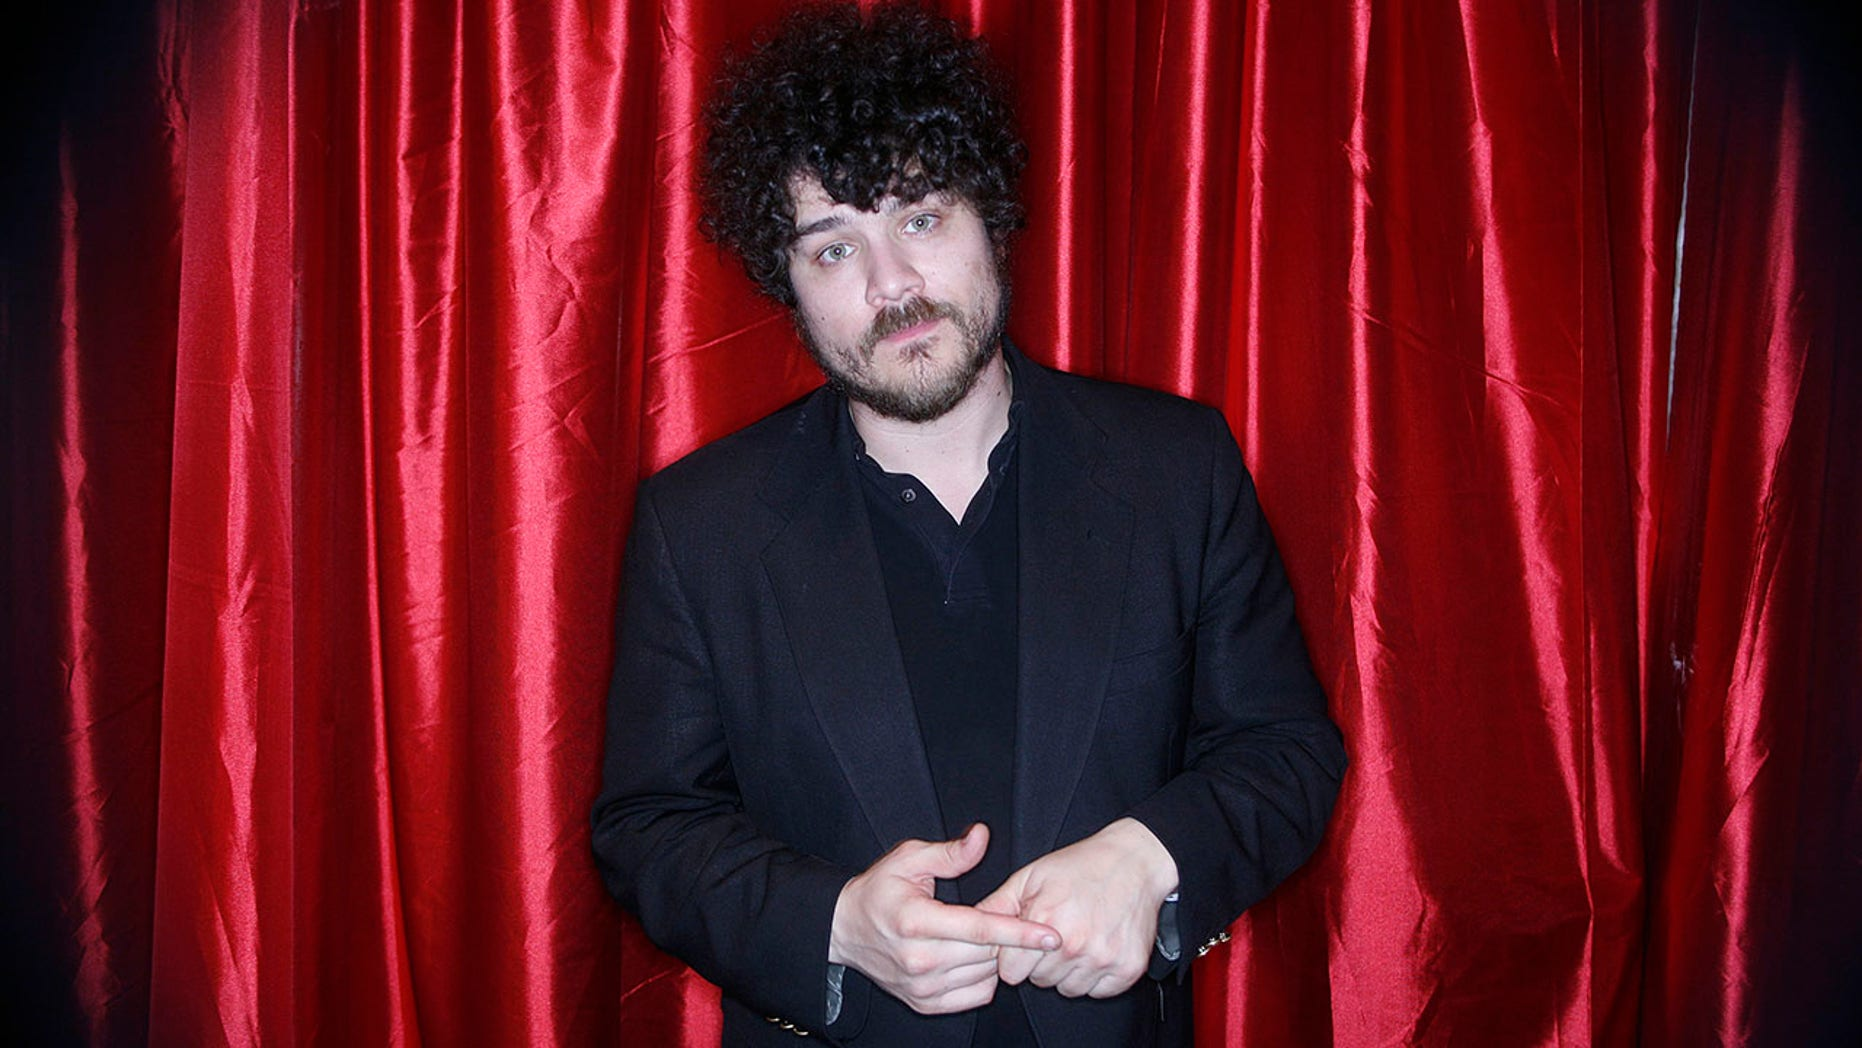 Musician Richard Swift has died at age 41.